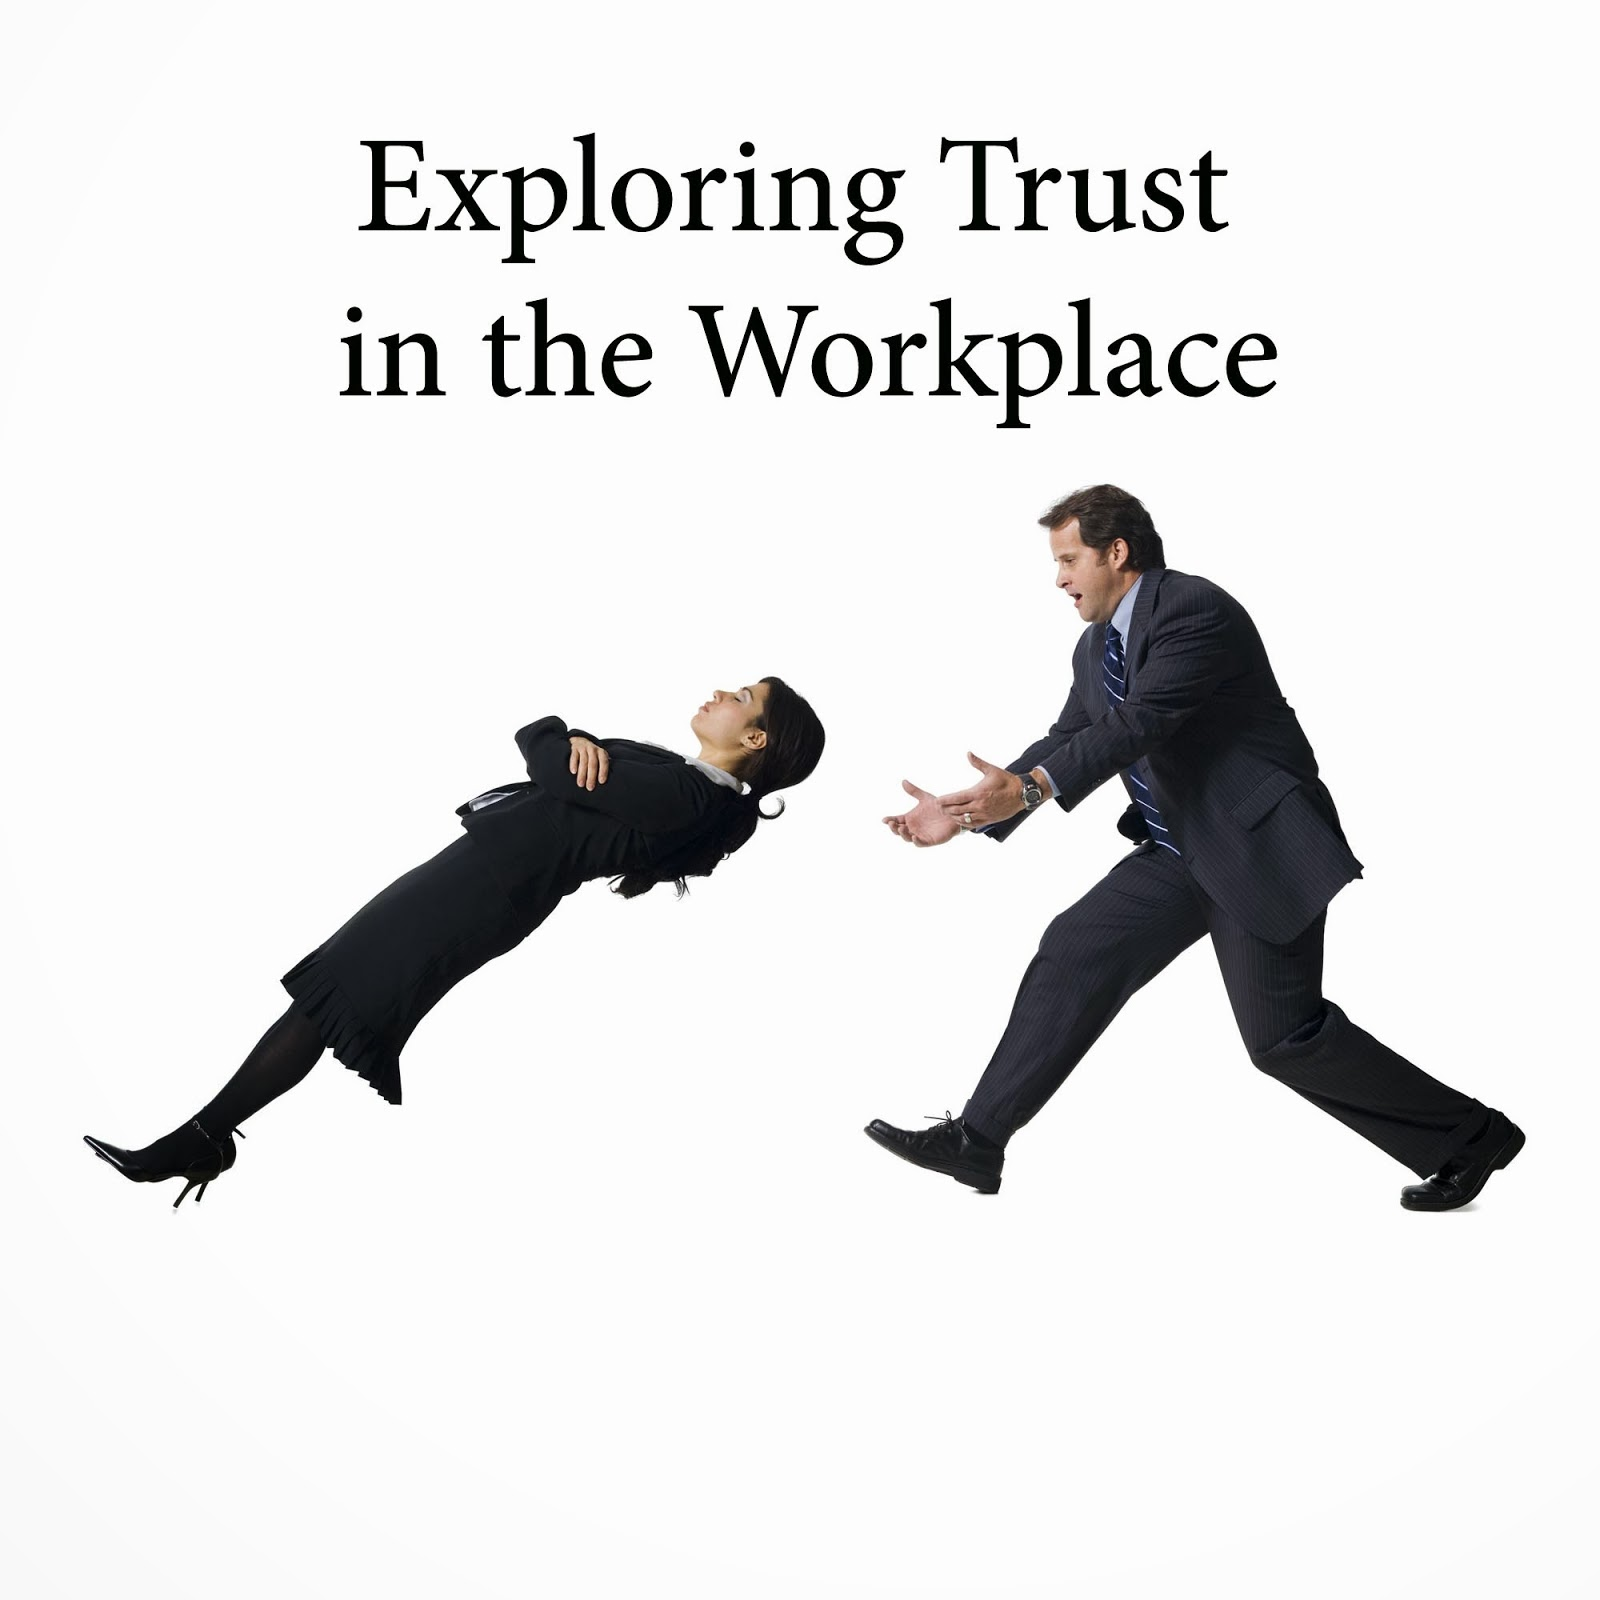 on trust in the workplace essays on trust in the workplace